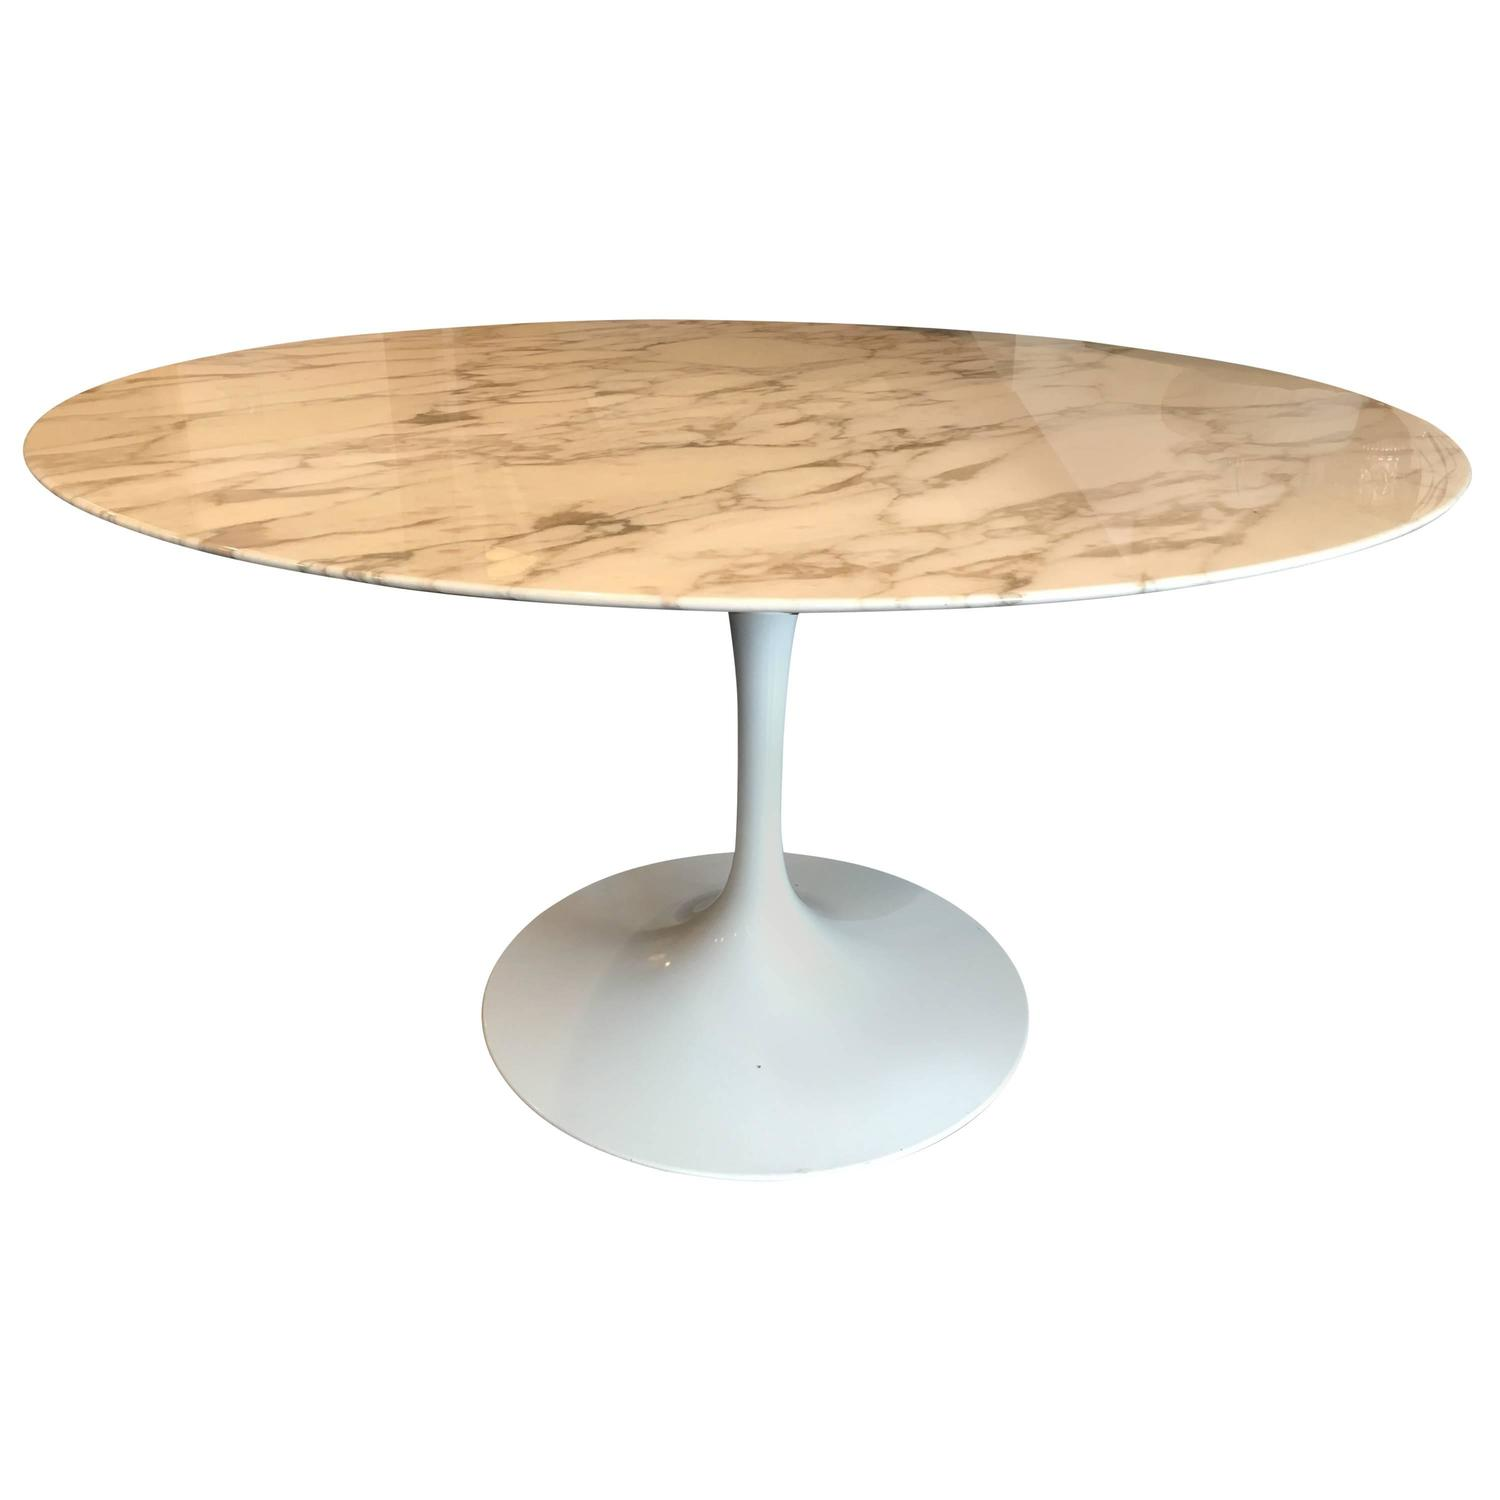 tulip dining table by eero saarinen for knoll at 1stdibs. Black Bedroom Furniture Sets. Home Design Ideas